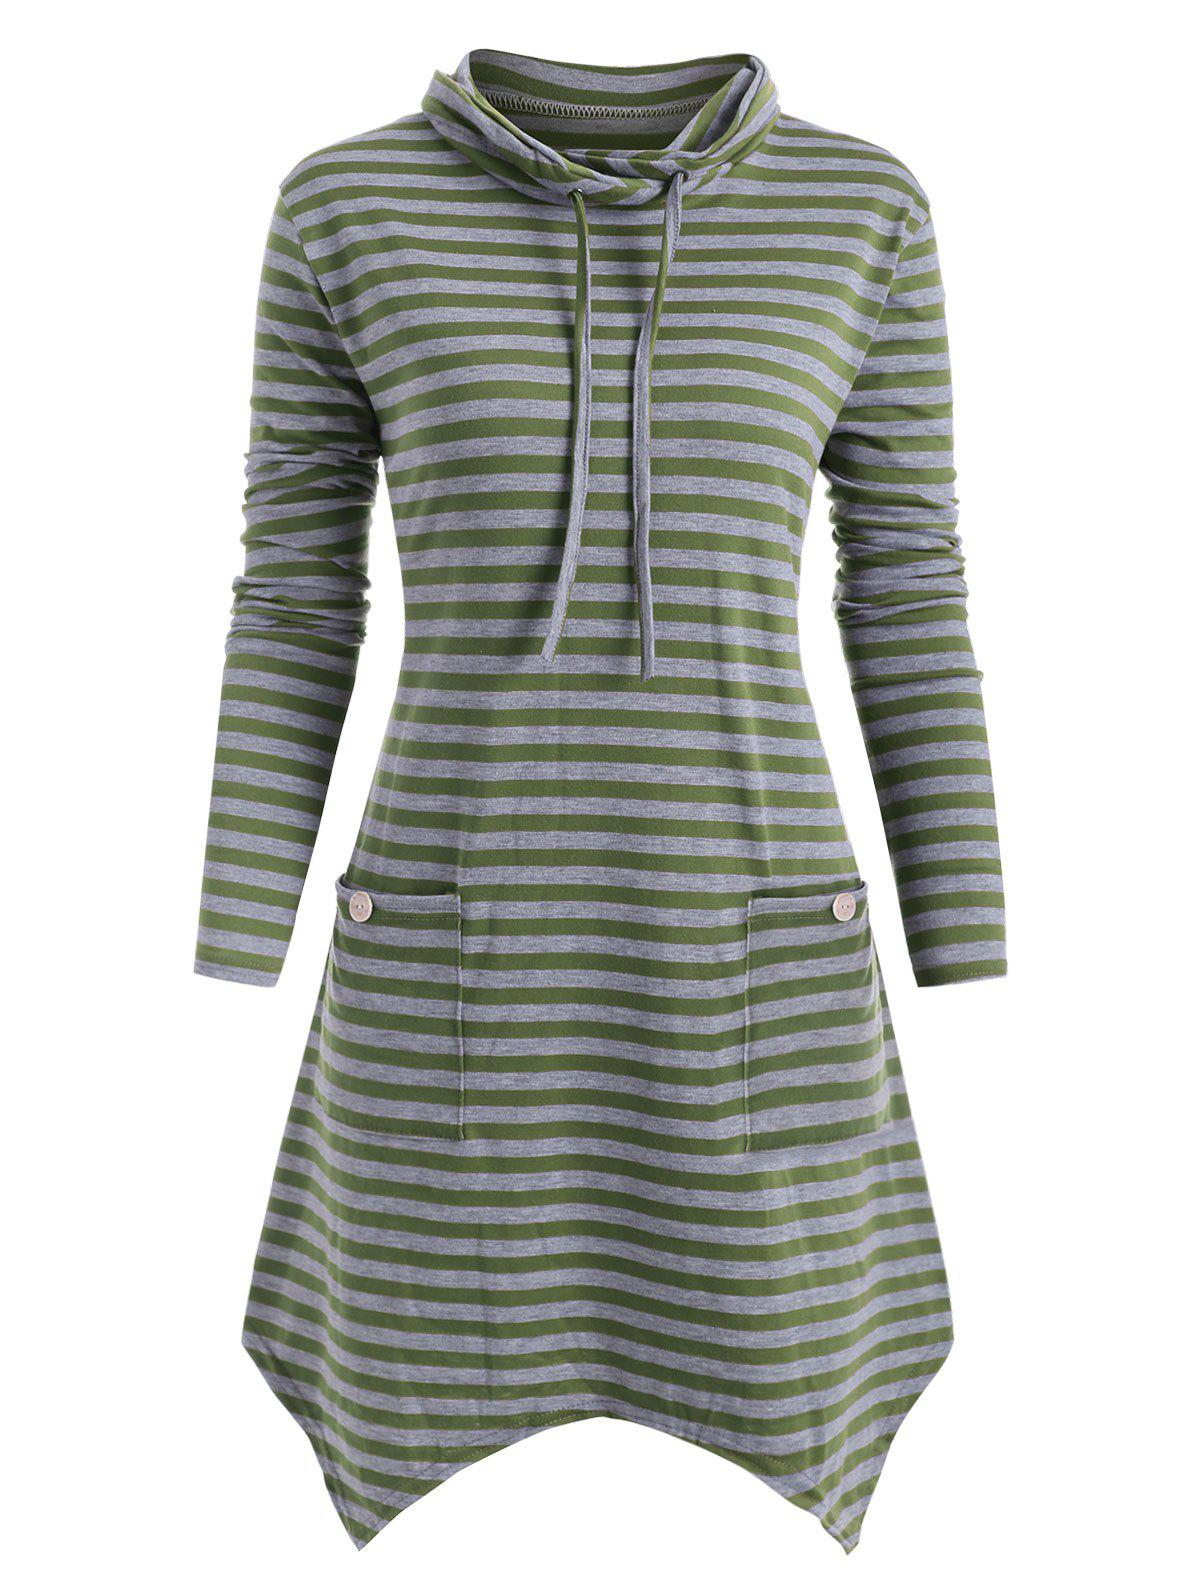 Cowl Neck Striped Plus Size Asymmetrical Tunic Top - SEA TURTLE GREEN L